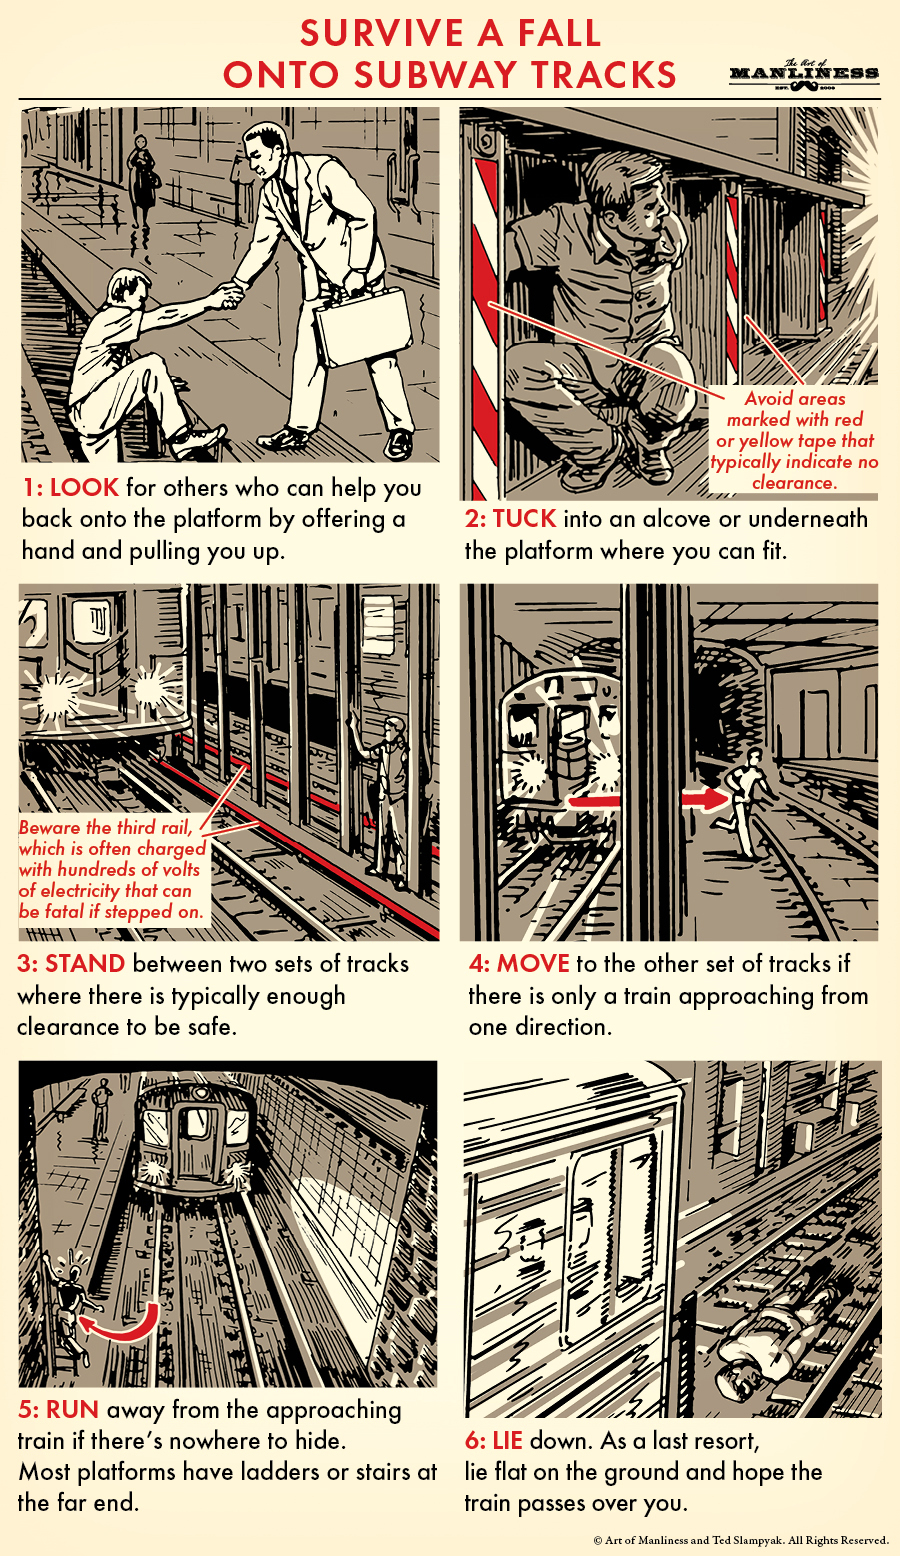 Comic guide for survival of a fall onto subway tracks.